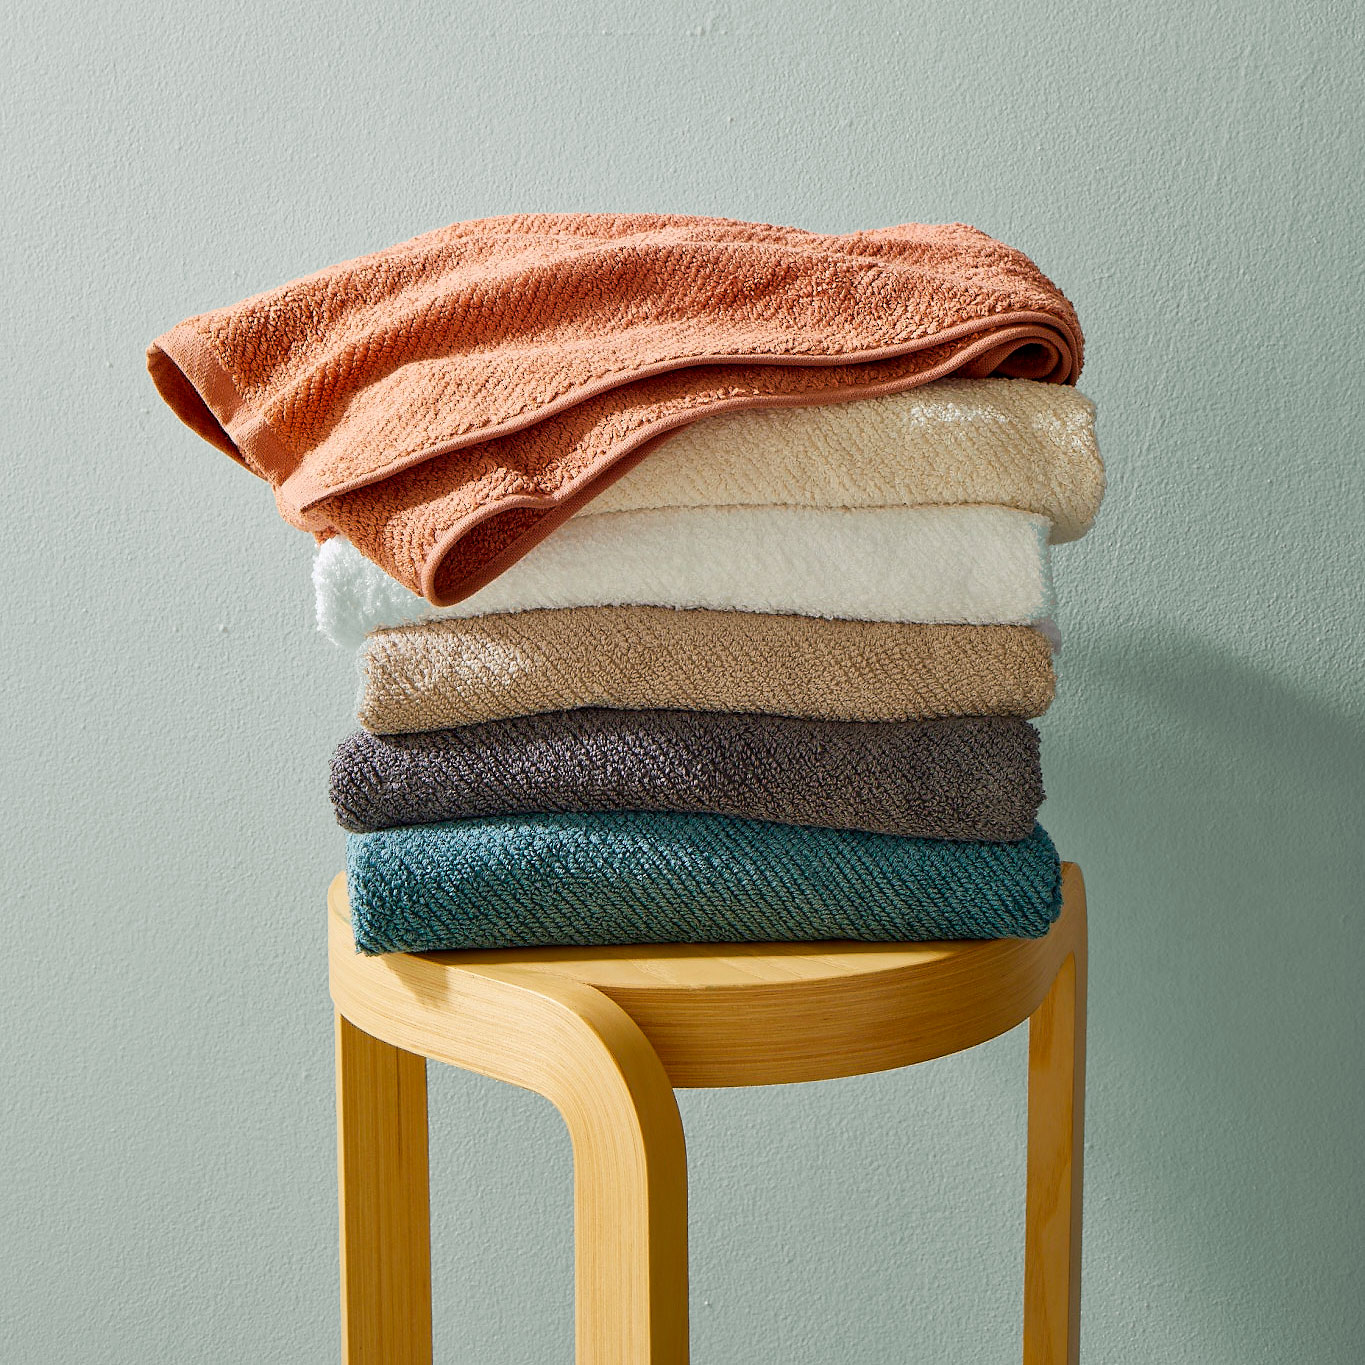 How to pick the best bath towels: stack of towels on stool